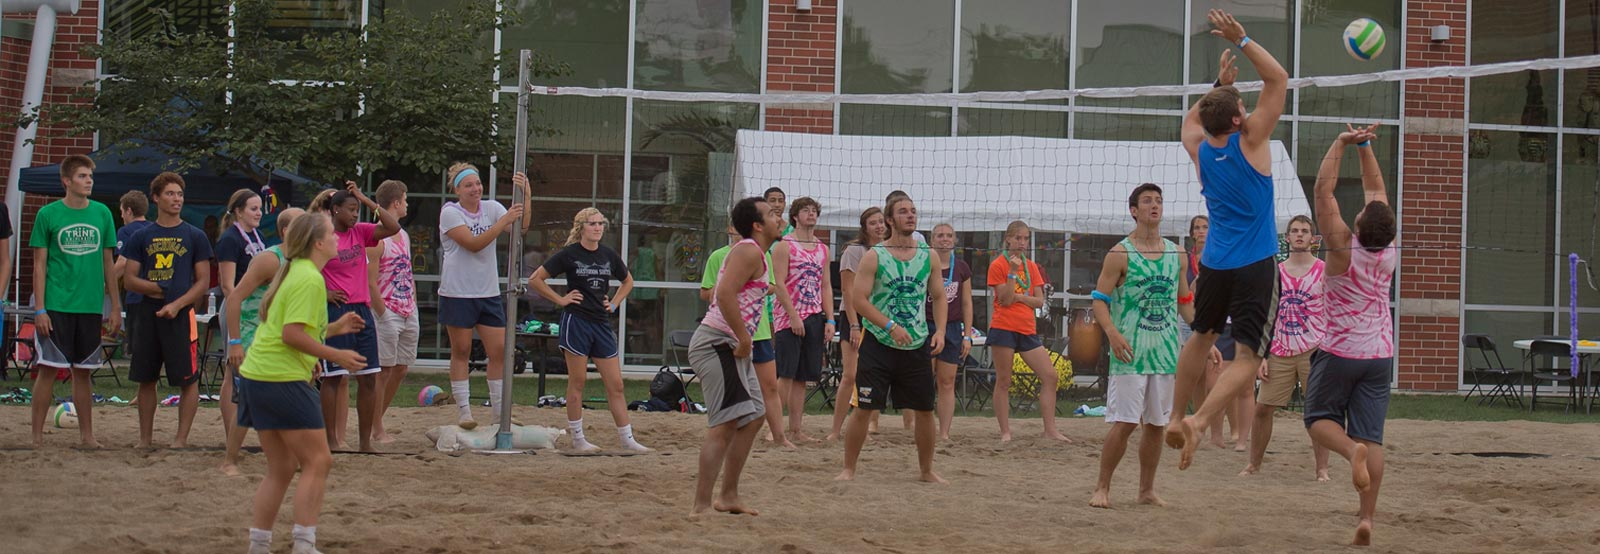 Students playing volleyball outside